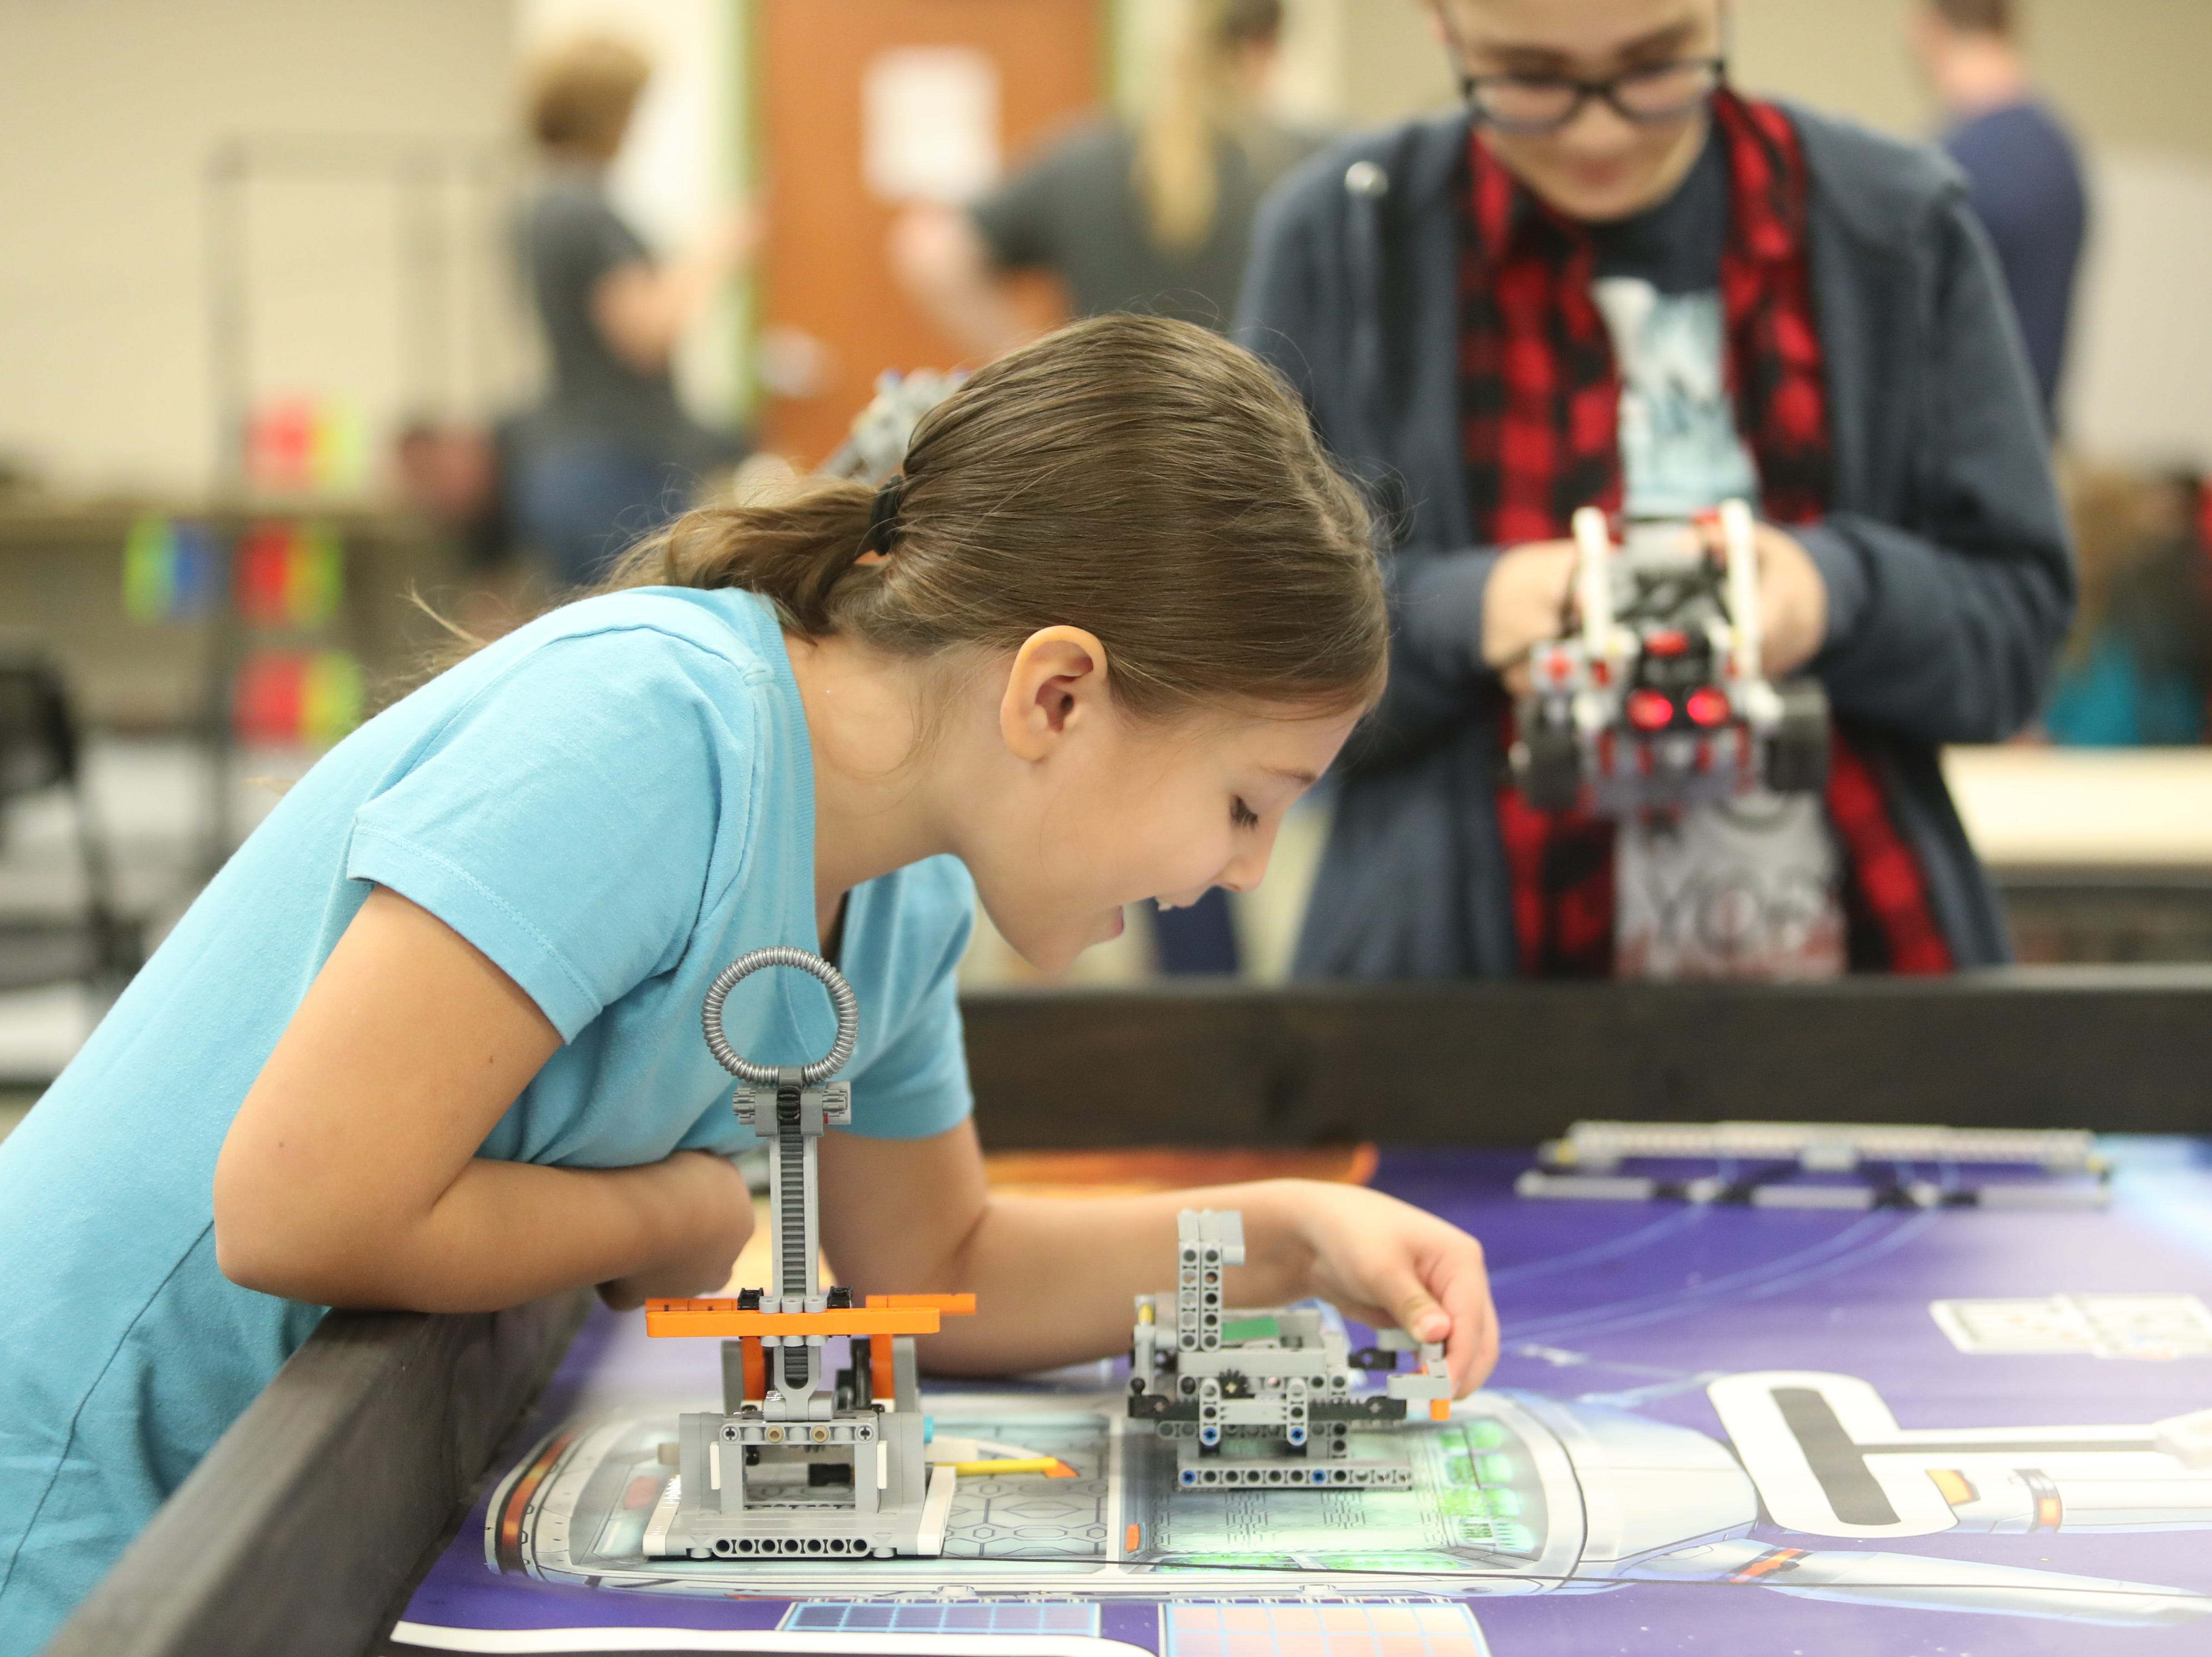 Schools, businesses and local agencies presented many types of interactive STEM exhibits at the STEMtastic Day of Discovery on Saturday, Feb. 9, 2019, in Fort Myers.